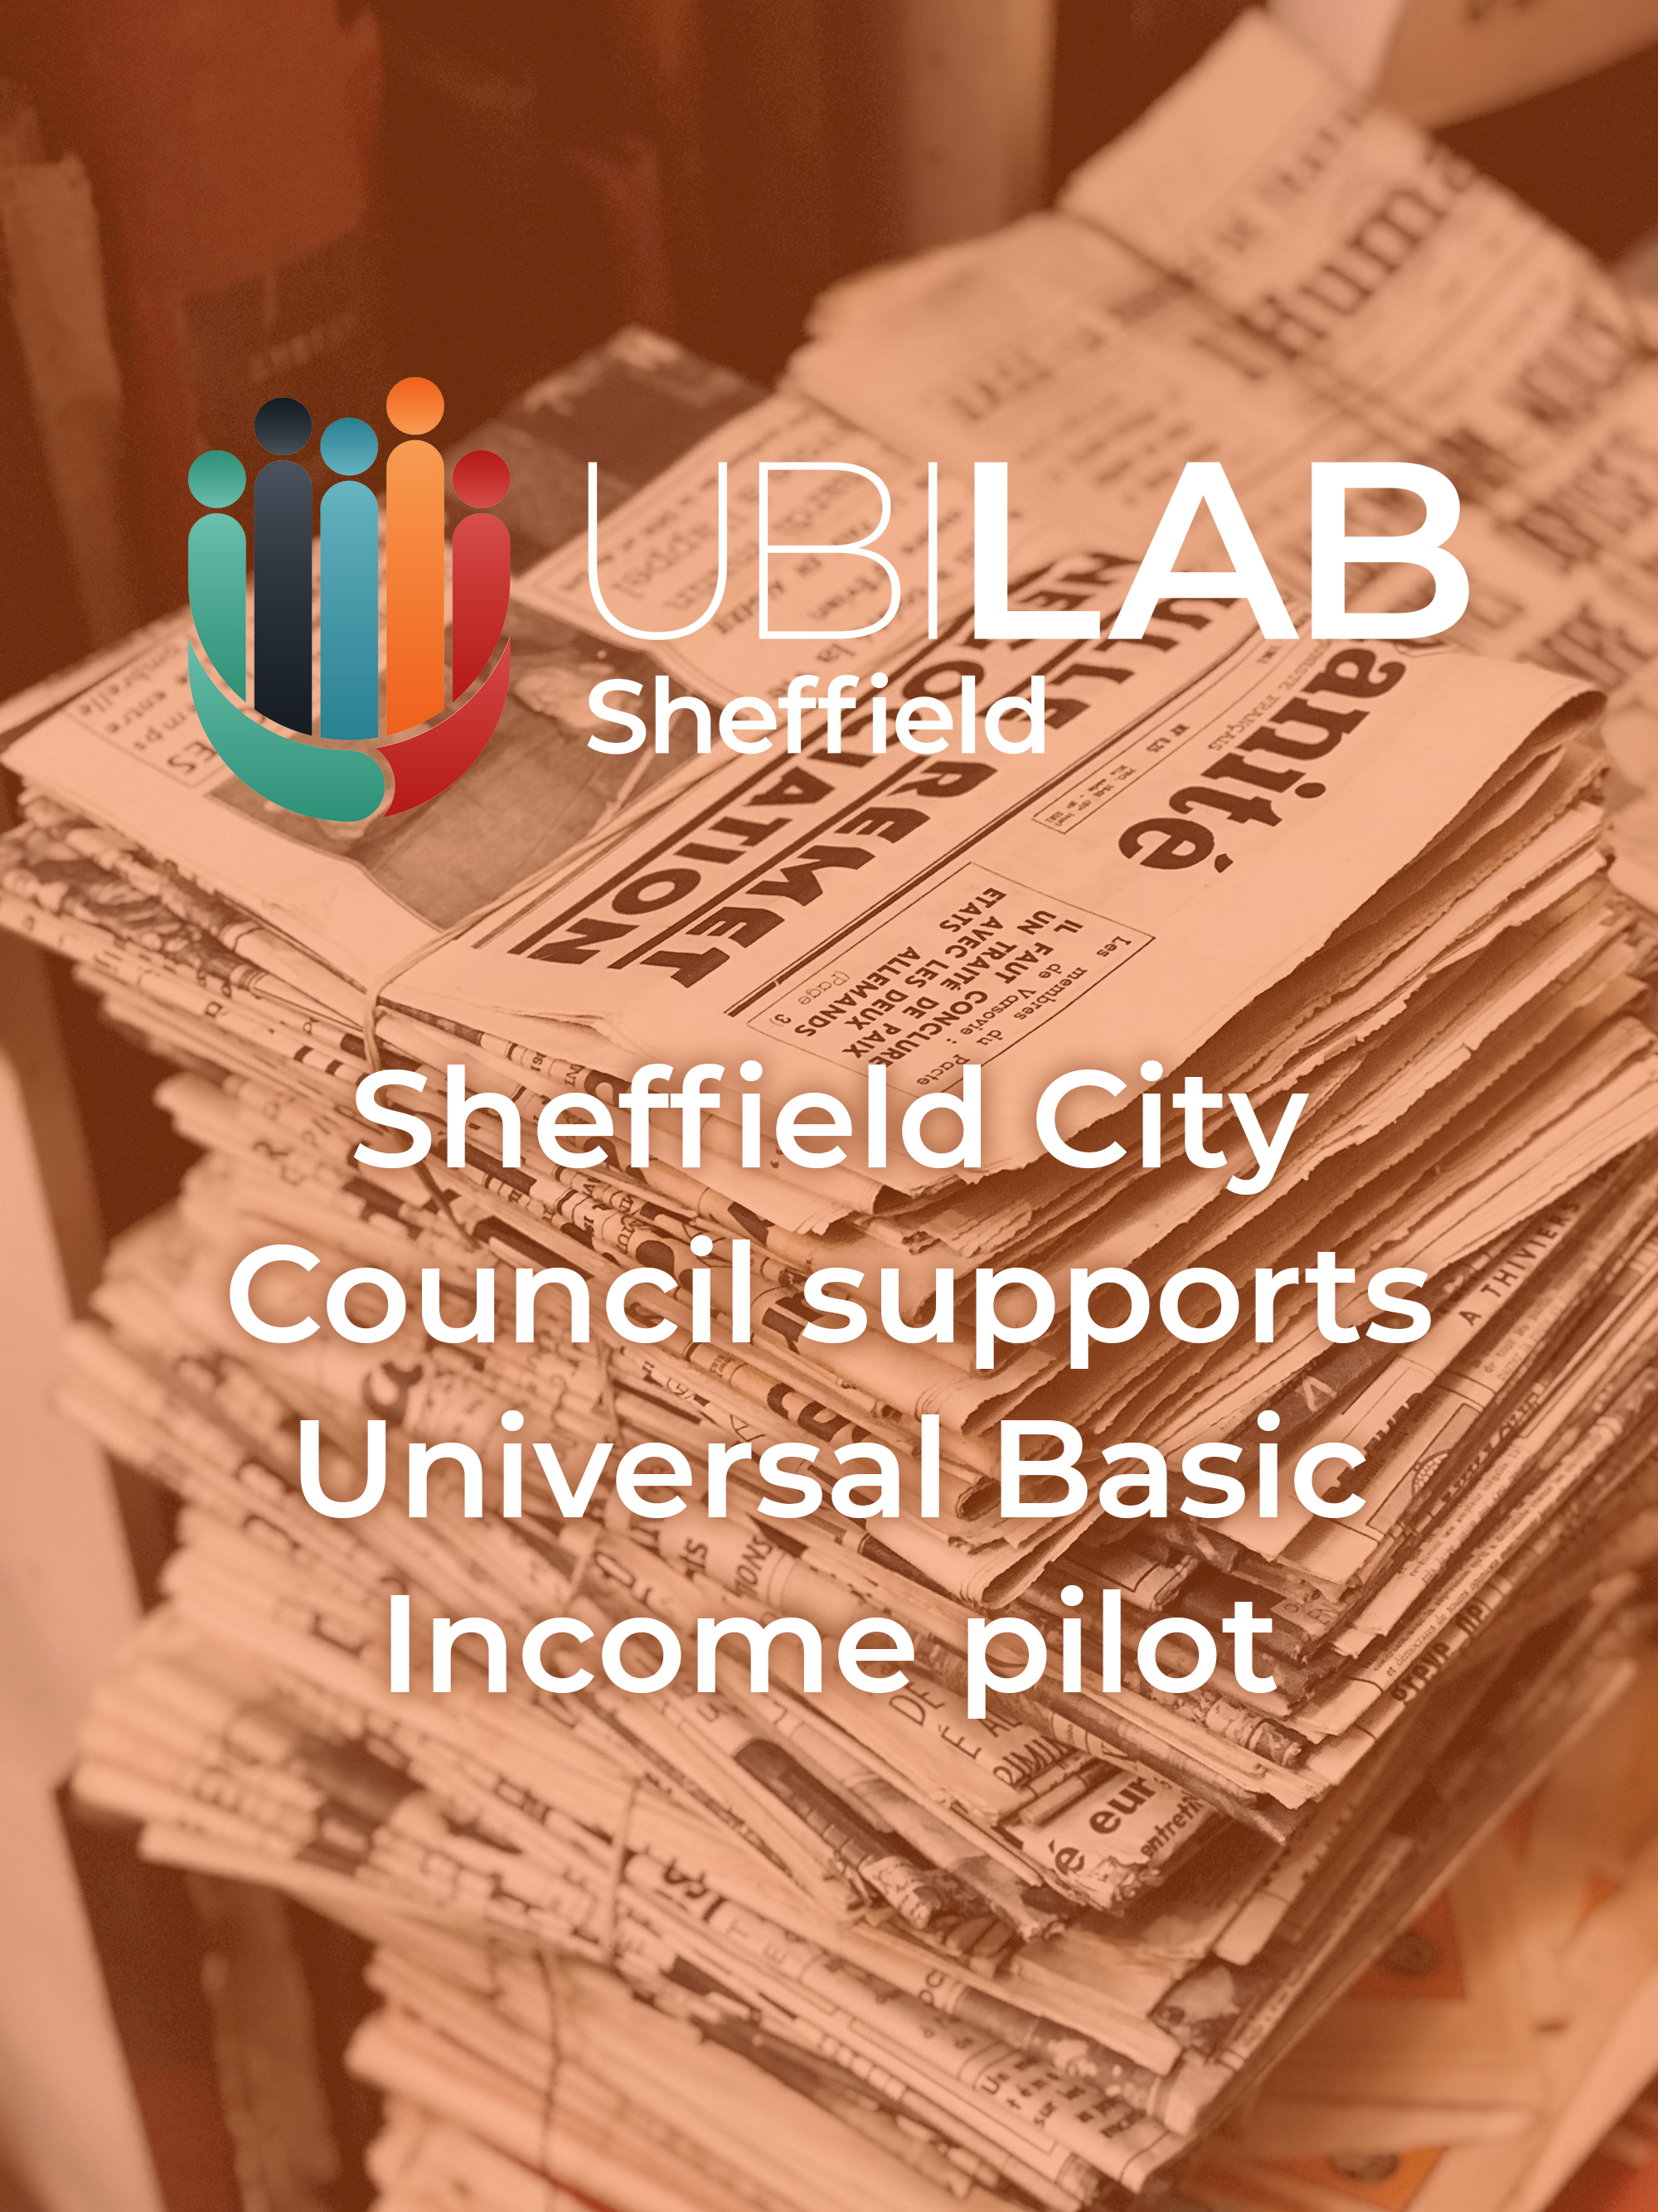 Sheffield City Council supports Universal Basic Income pilot - 12th June 19 - Sheffield City Council will pass a motion today giving its support to a pilot of Universal Basic Income (UBI) in the city.